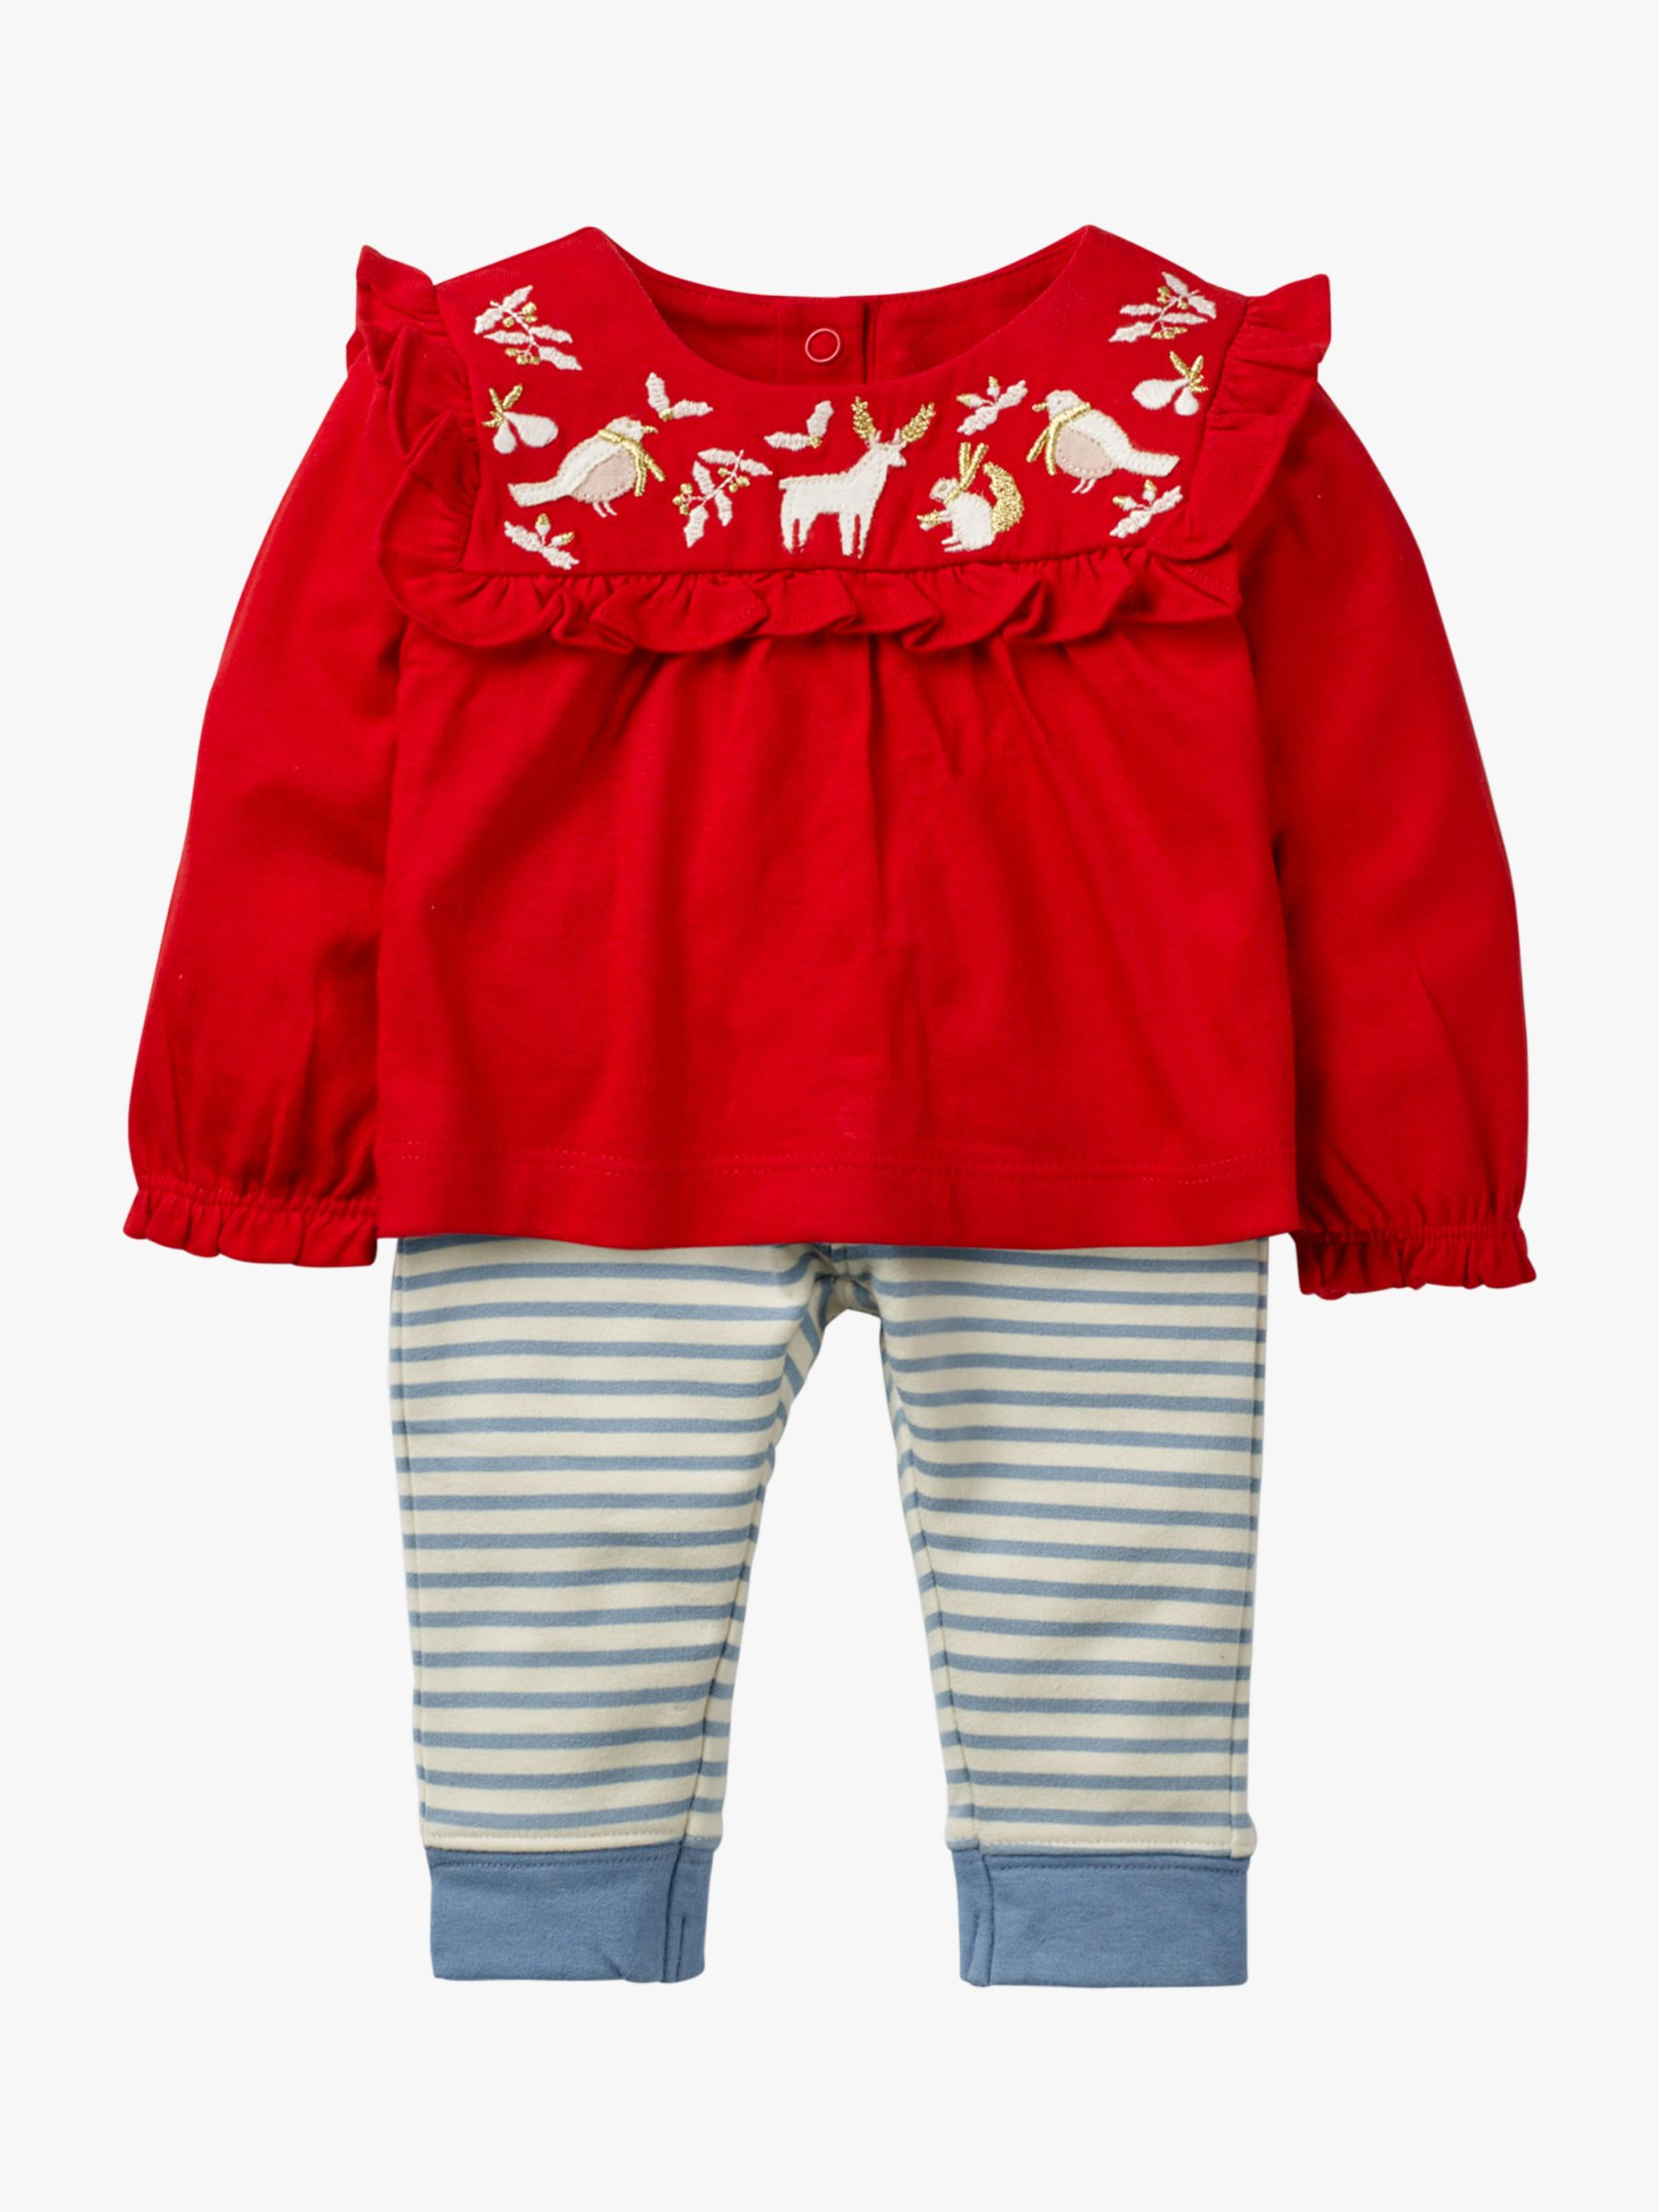 NEW BABY MINI BODEN SIZE 0 3 6 12 MONTHS 3-4 YEARS EMBROIDERED JERSEY TOP